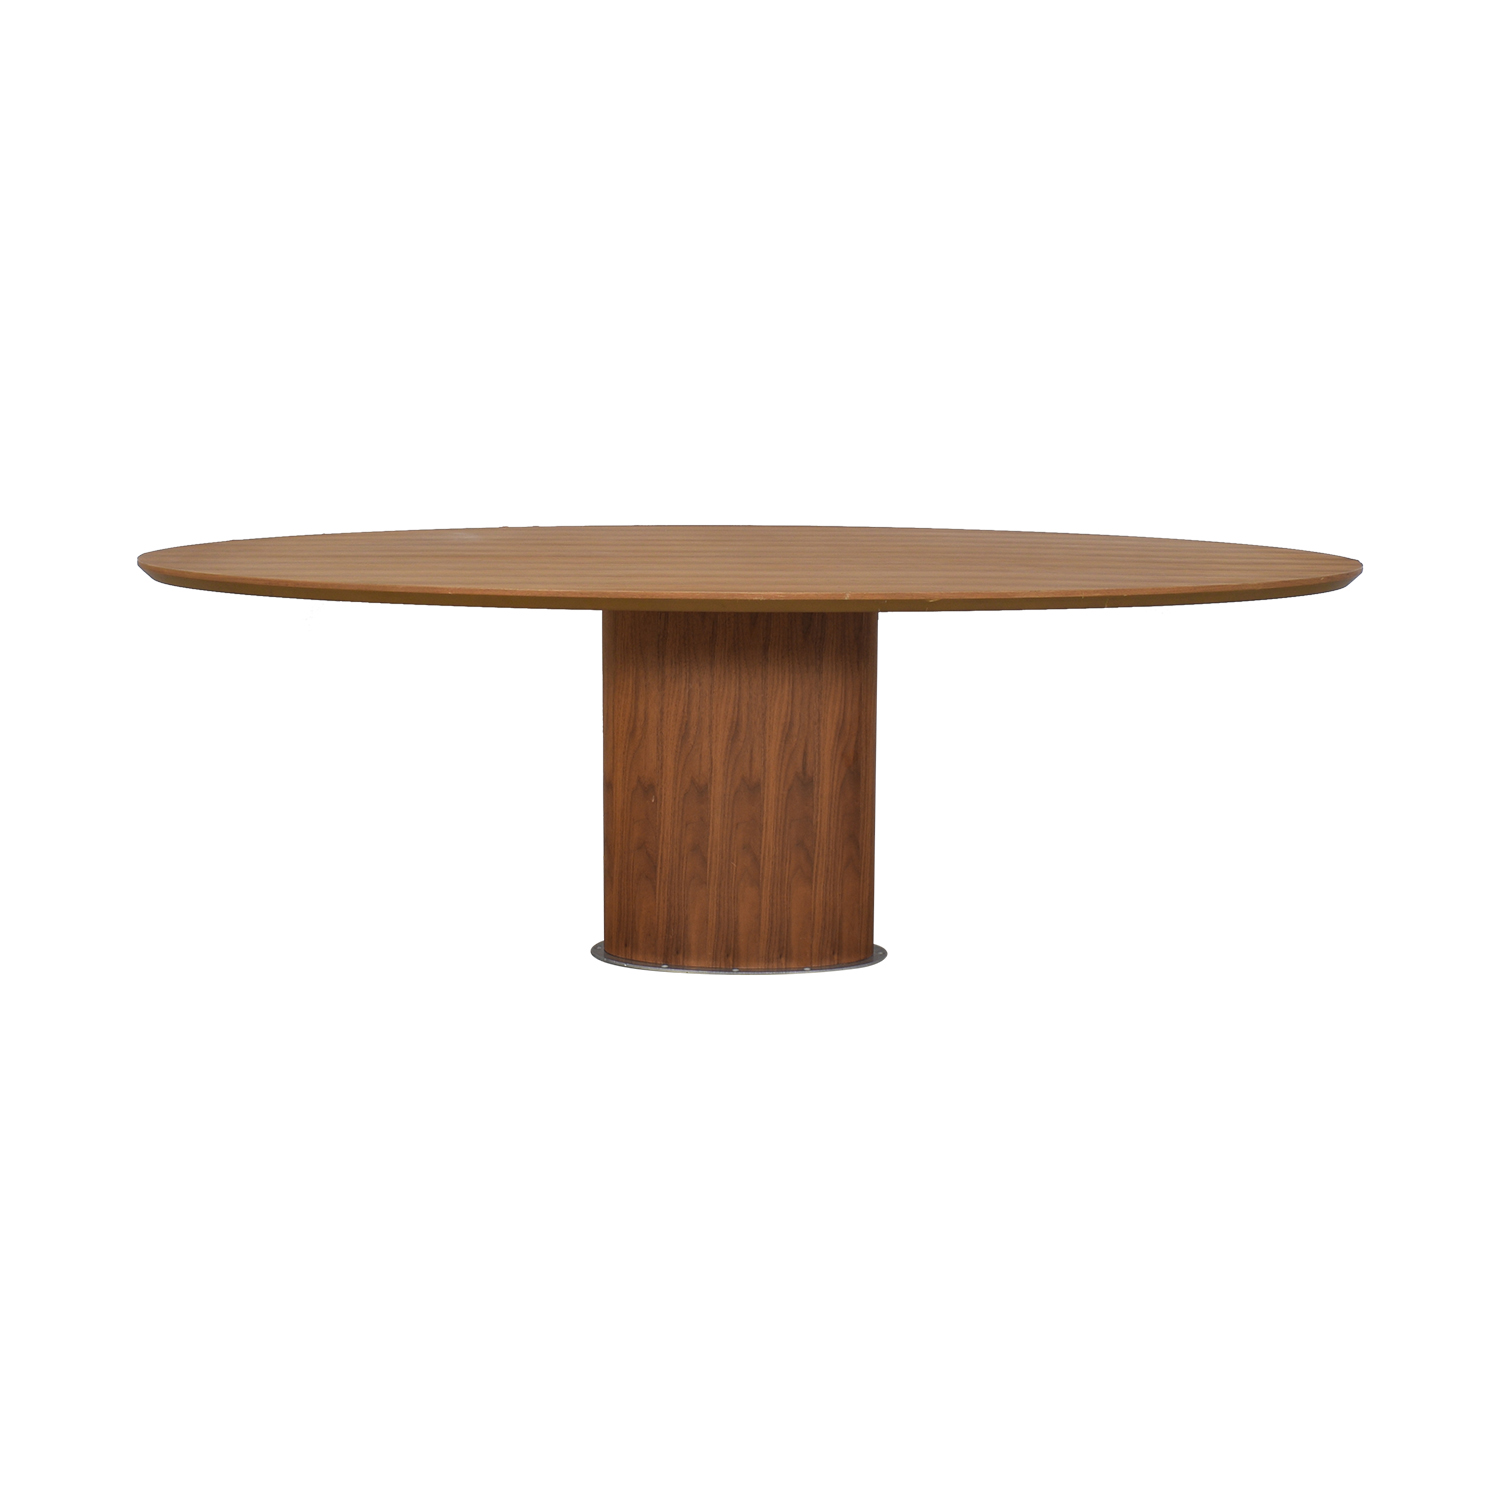 Pangea Home Pangea Home Oval Modern Dining Table Dinner Tables